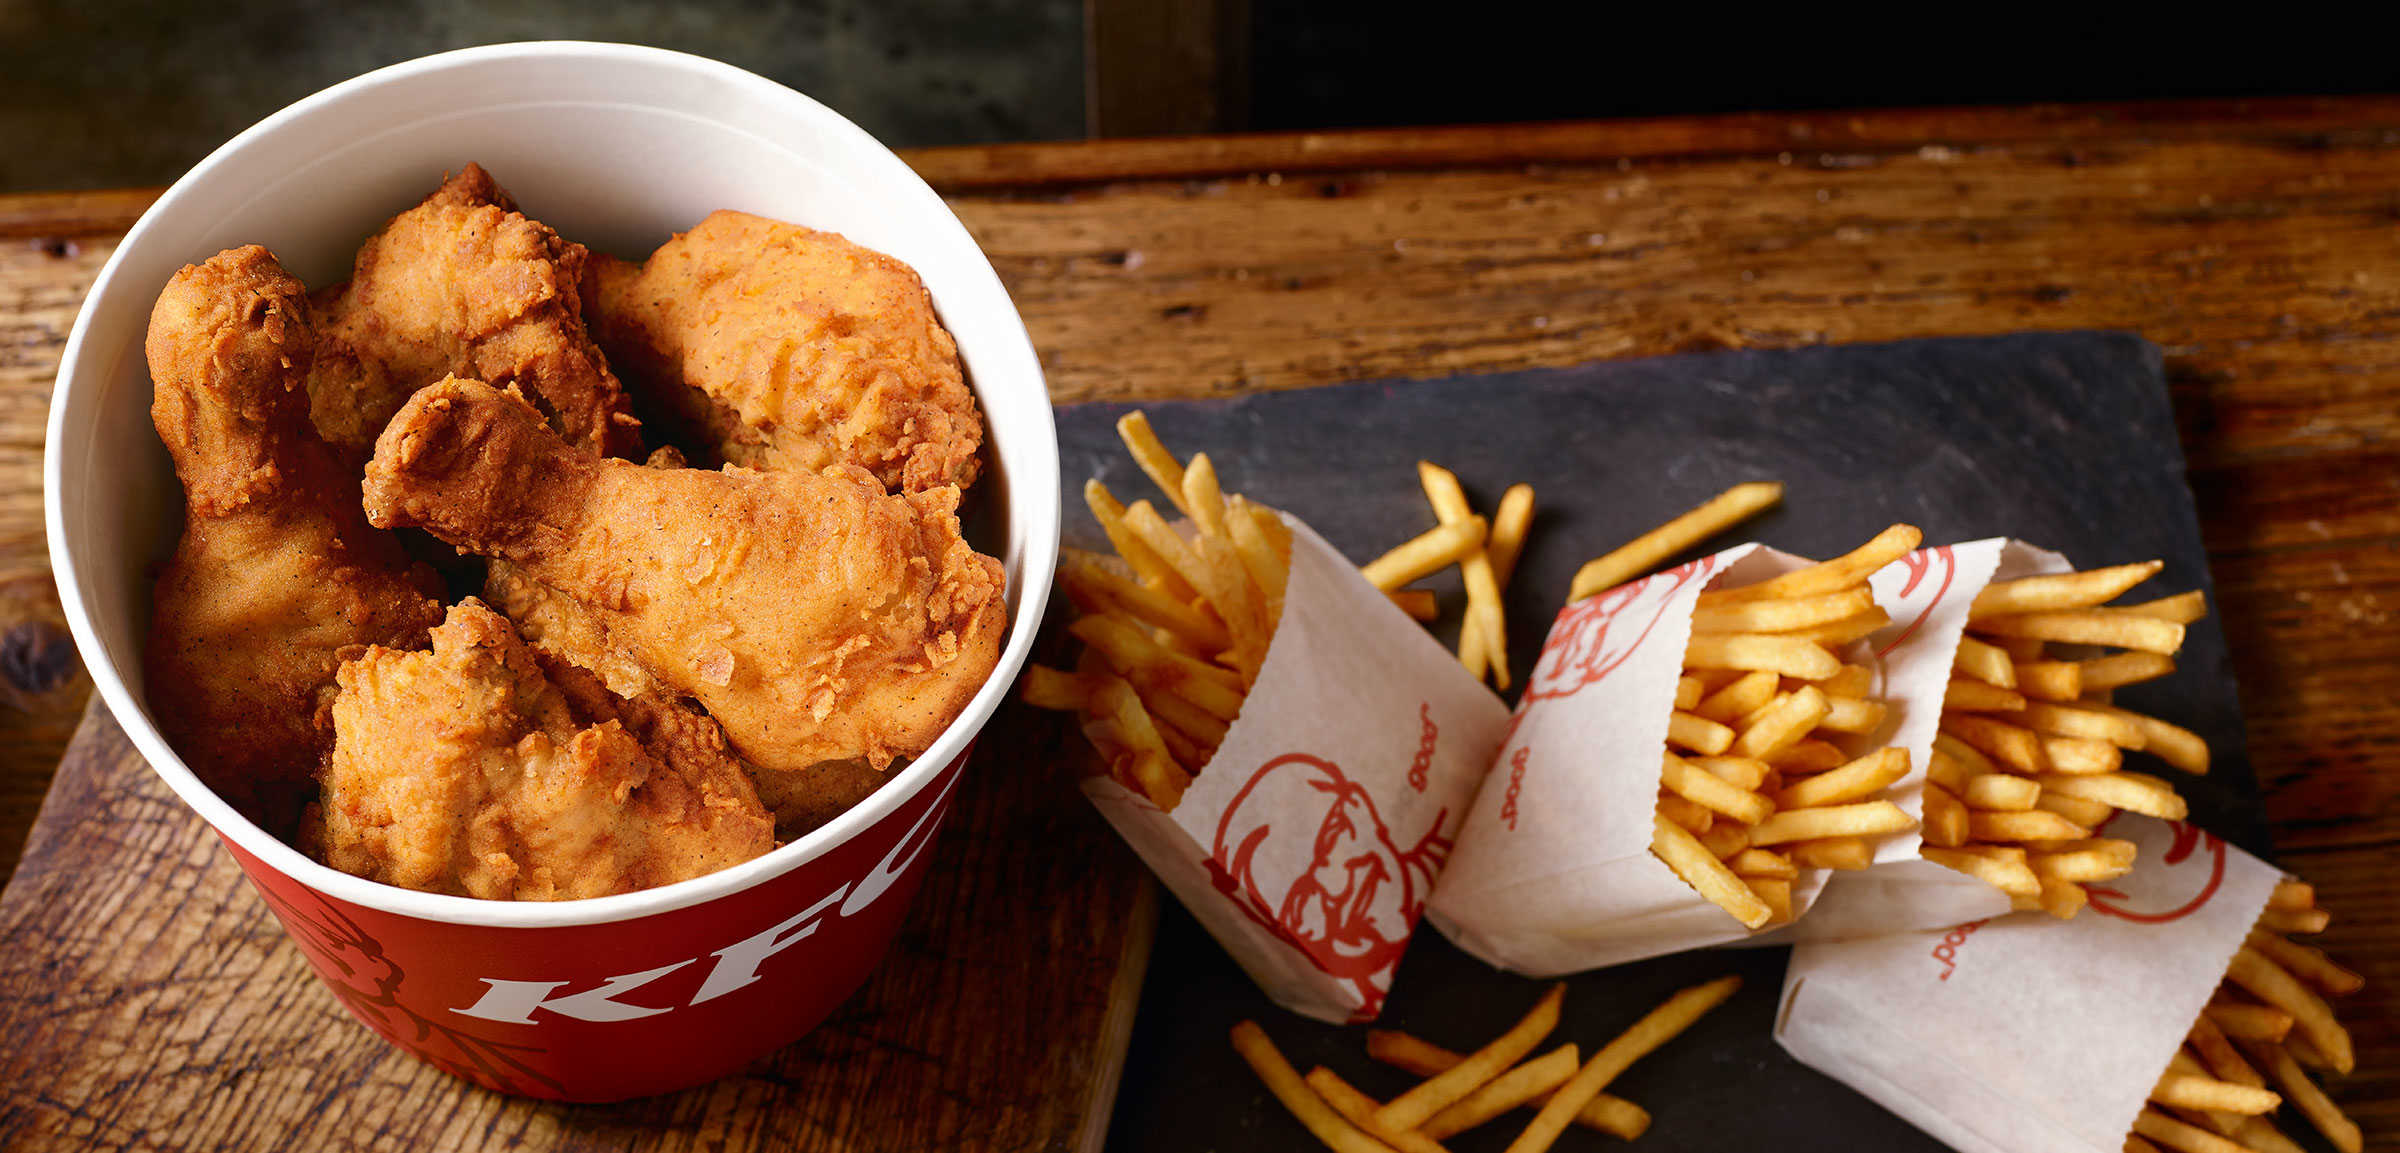 types chicken kfc bucket with deal - types-chicken-kfc-bucket-with-deal